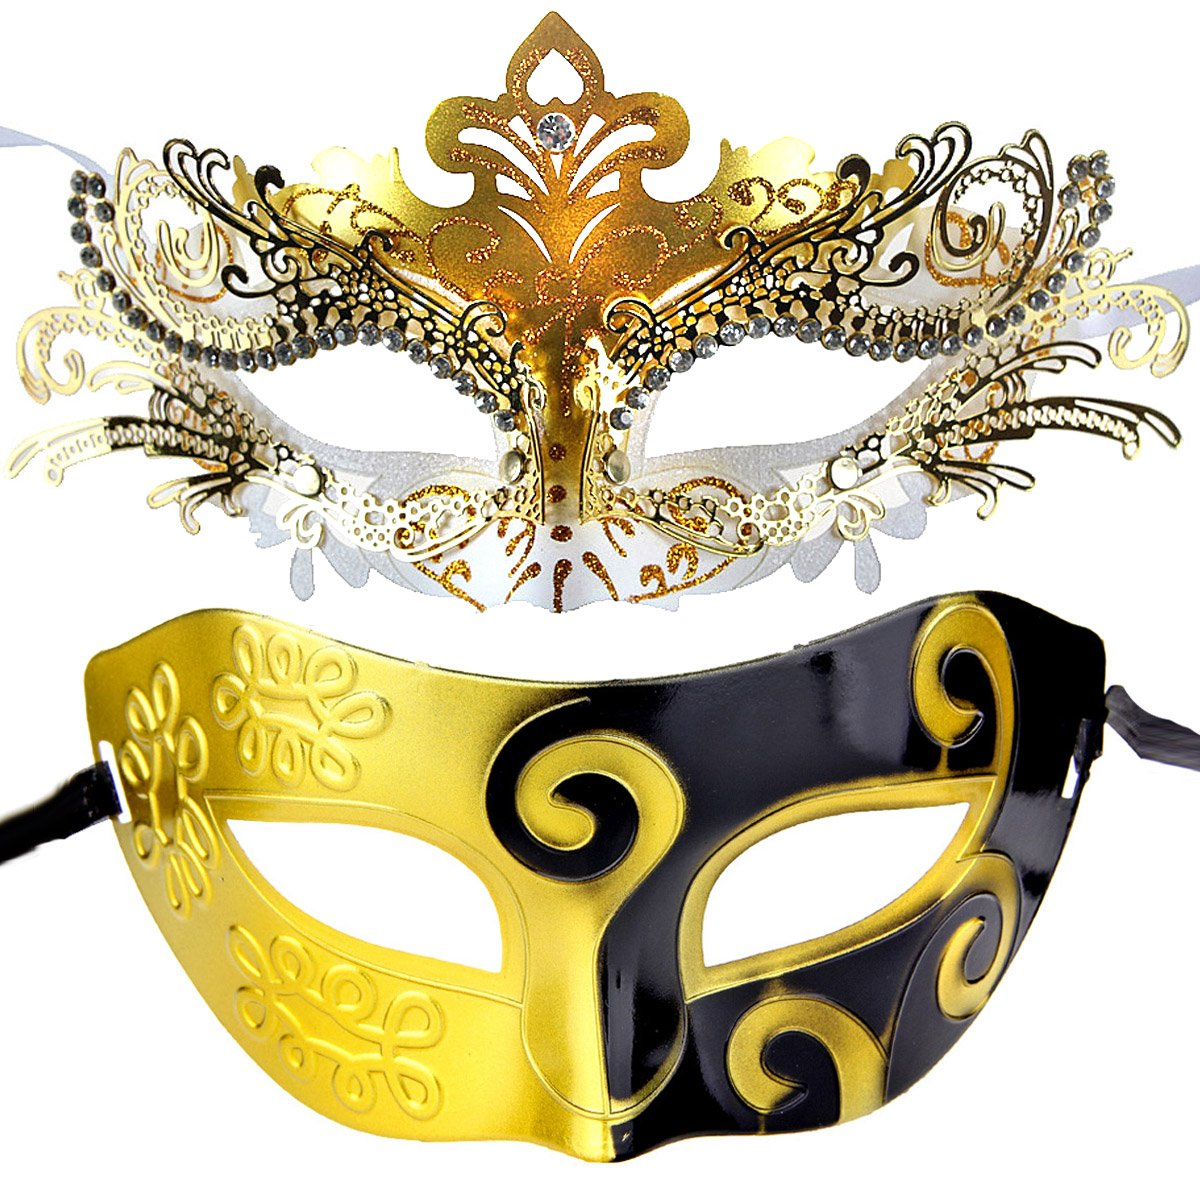 Couple Mardi Gras Venetian Masquerade Masks Set Pretty Party Evening Prom Decorations (gold&black+black) IETANG